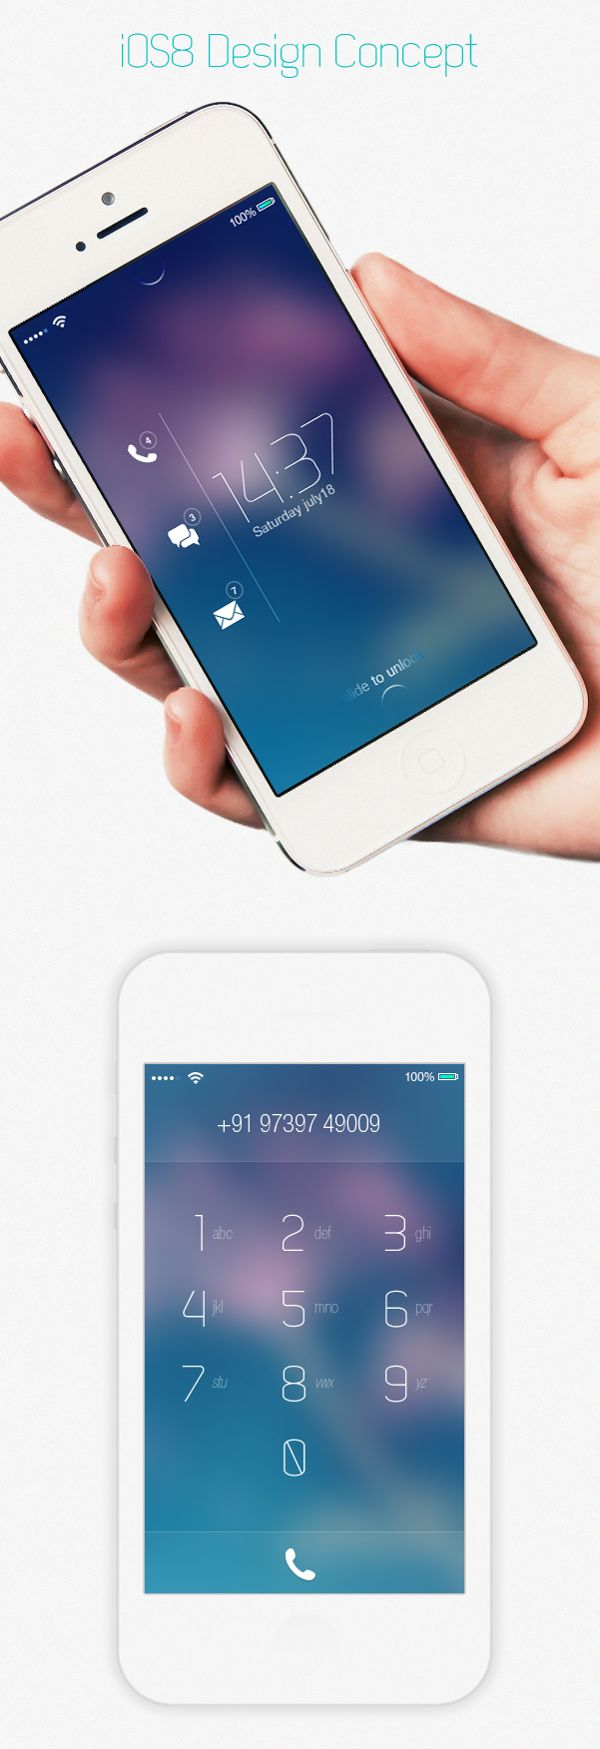 iOS8 Design Concept. by Rabin Dey, via Behance